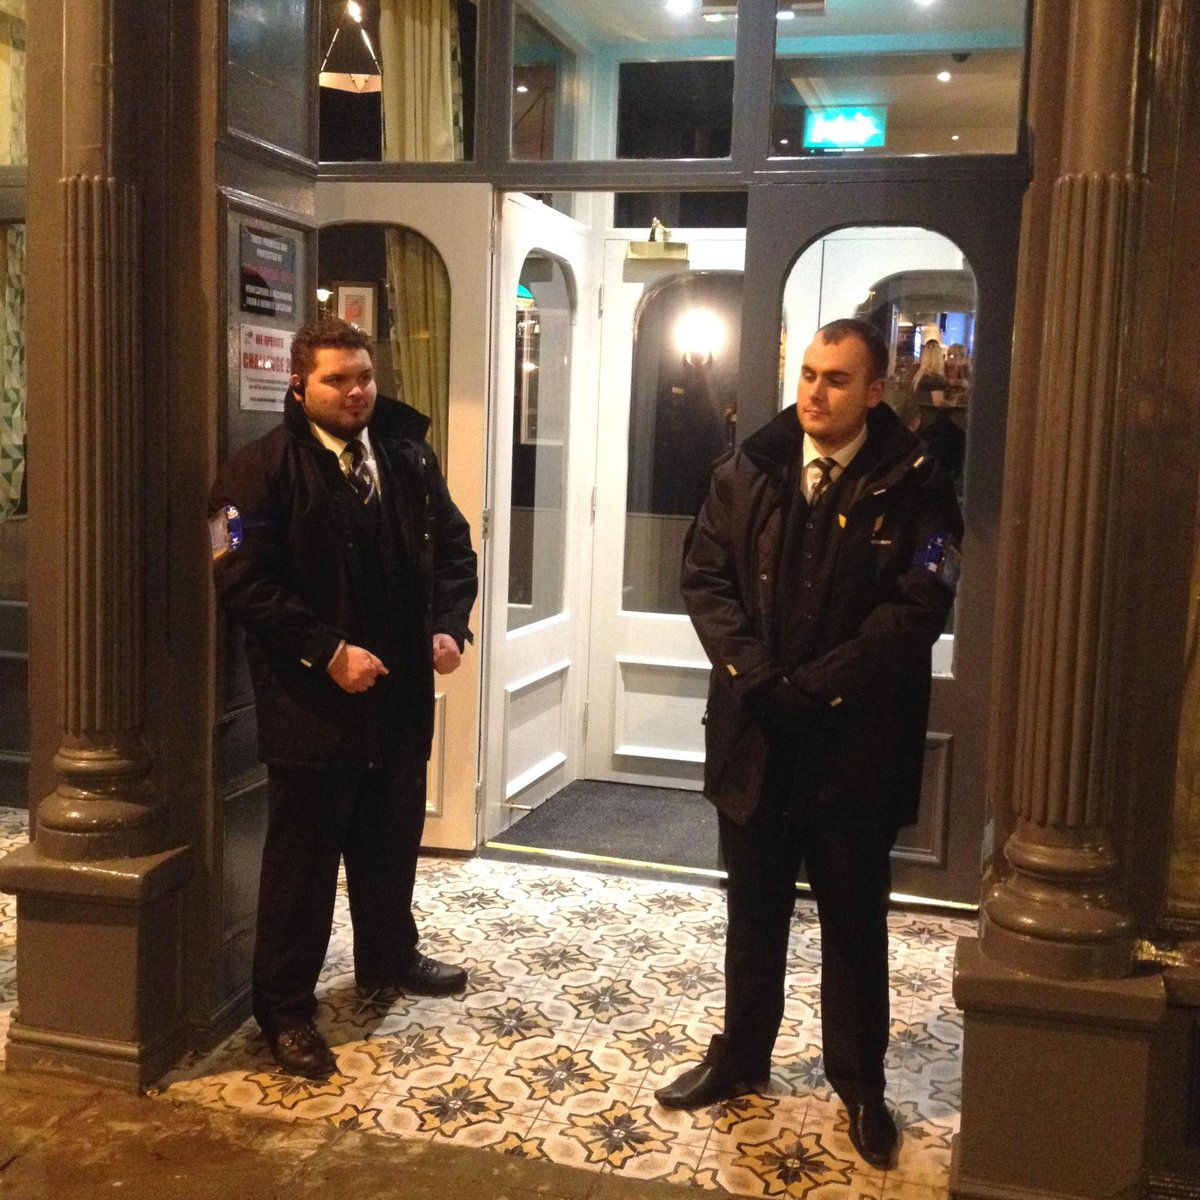 Phoenix Security on Twitter  Door Supervisors Lewis Bowden and Connor Quick outside new venue Vesta Tilleys in #Sunderland #security #sia ...  sc 1 st  Twitter & Phoenix Security on Twitter: